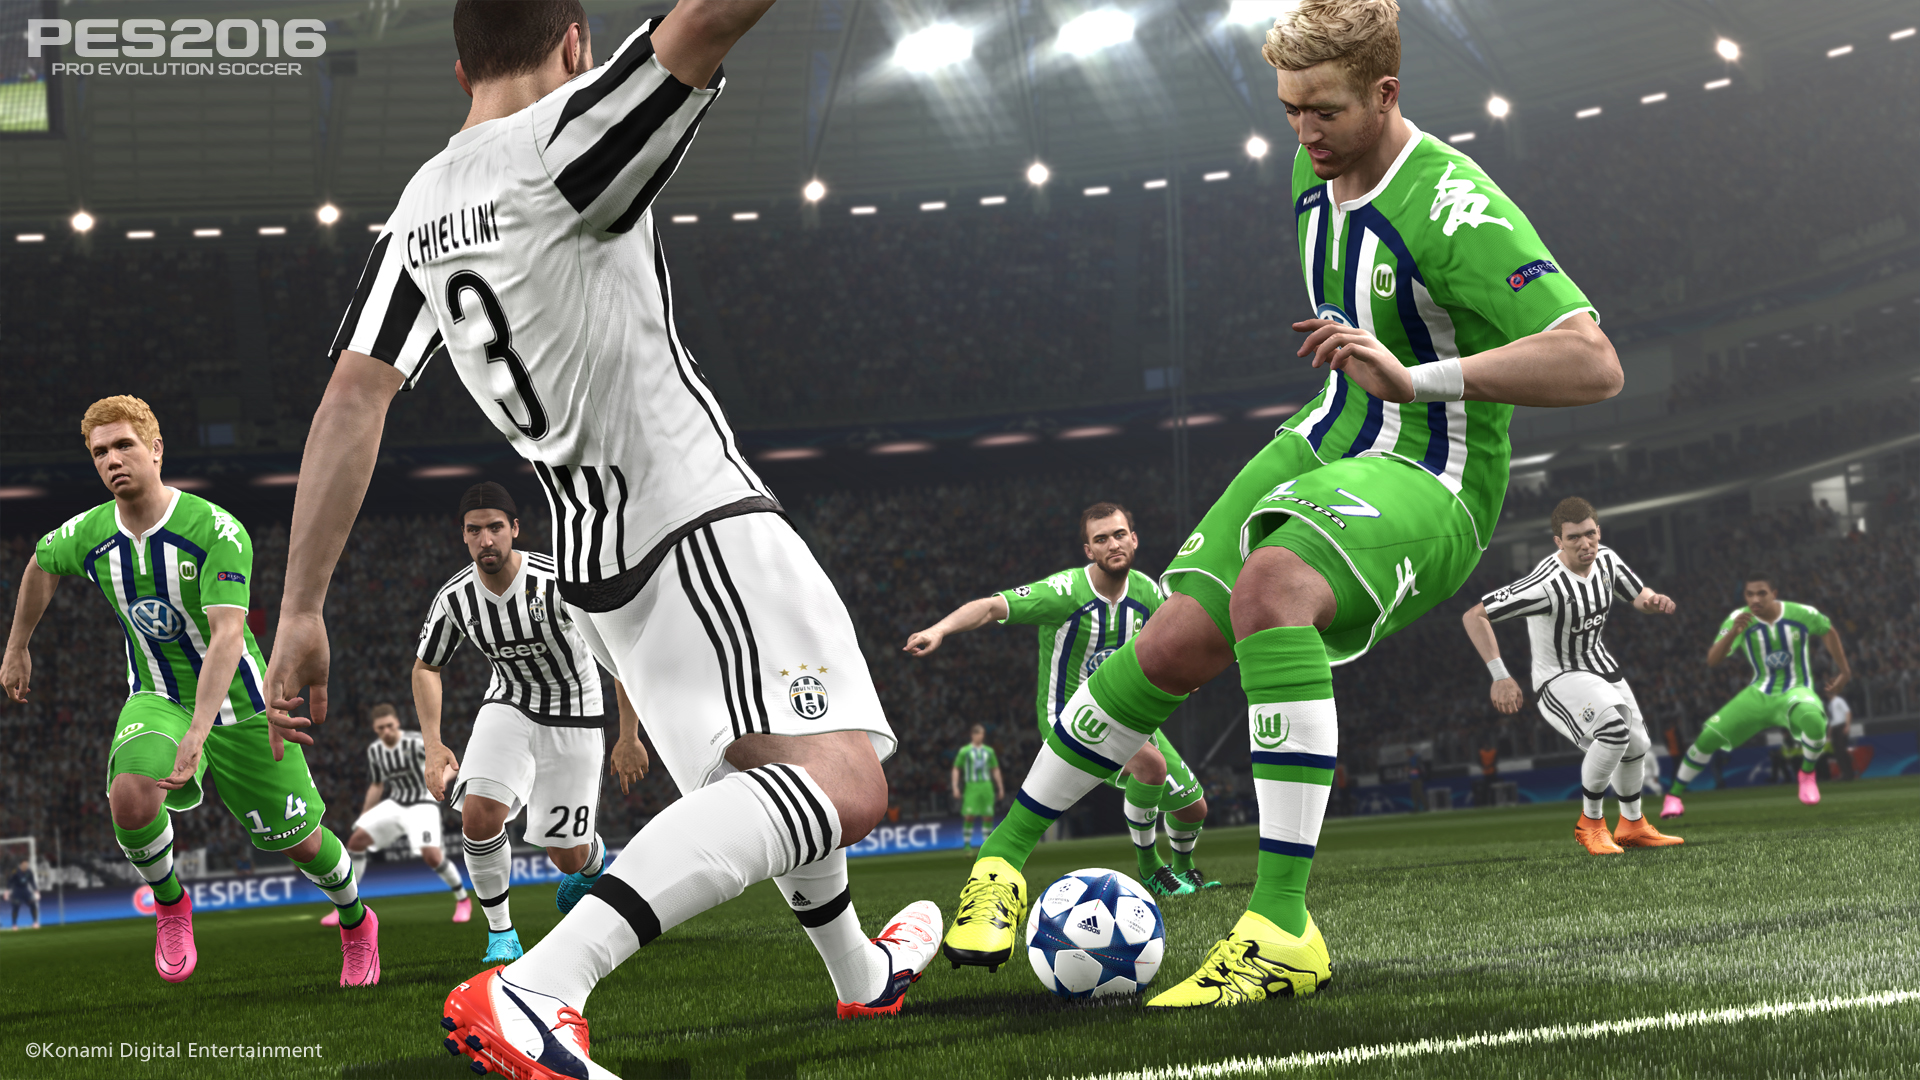 PES 2016 - is it better or worse than FIFA 16?